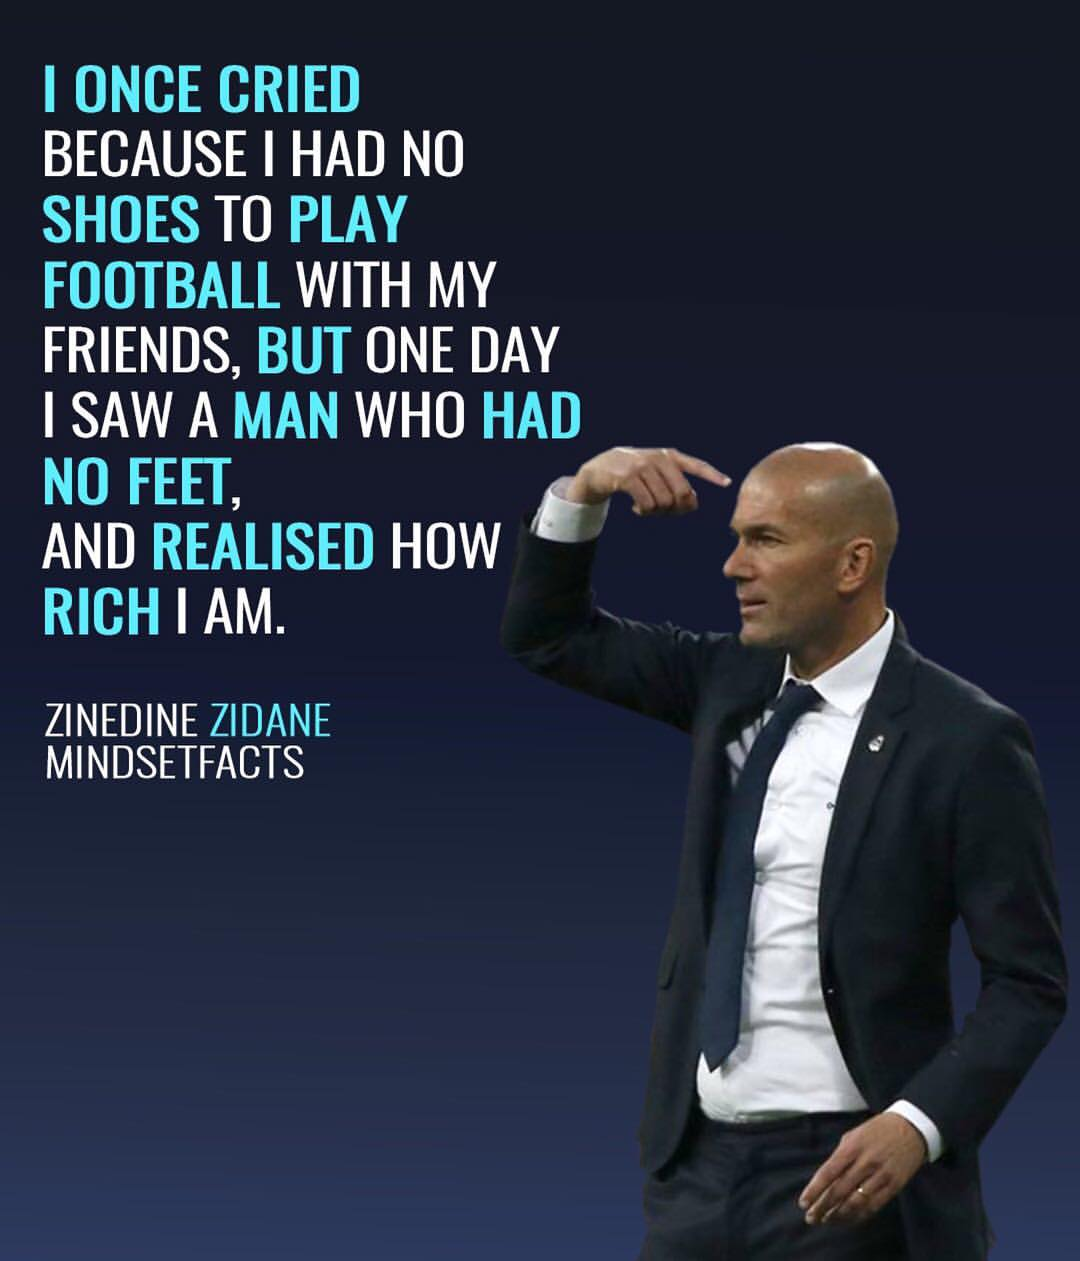 Zinedine Zidane Mindset Facts